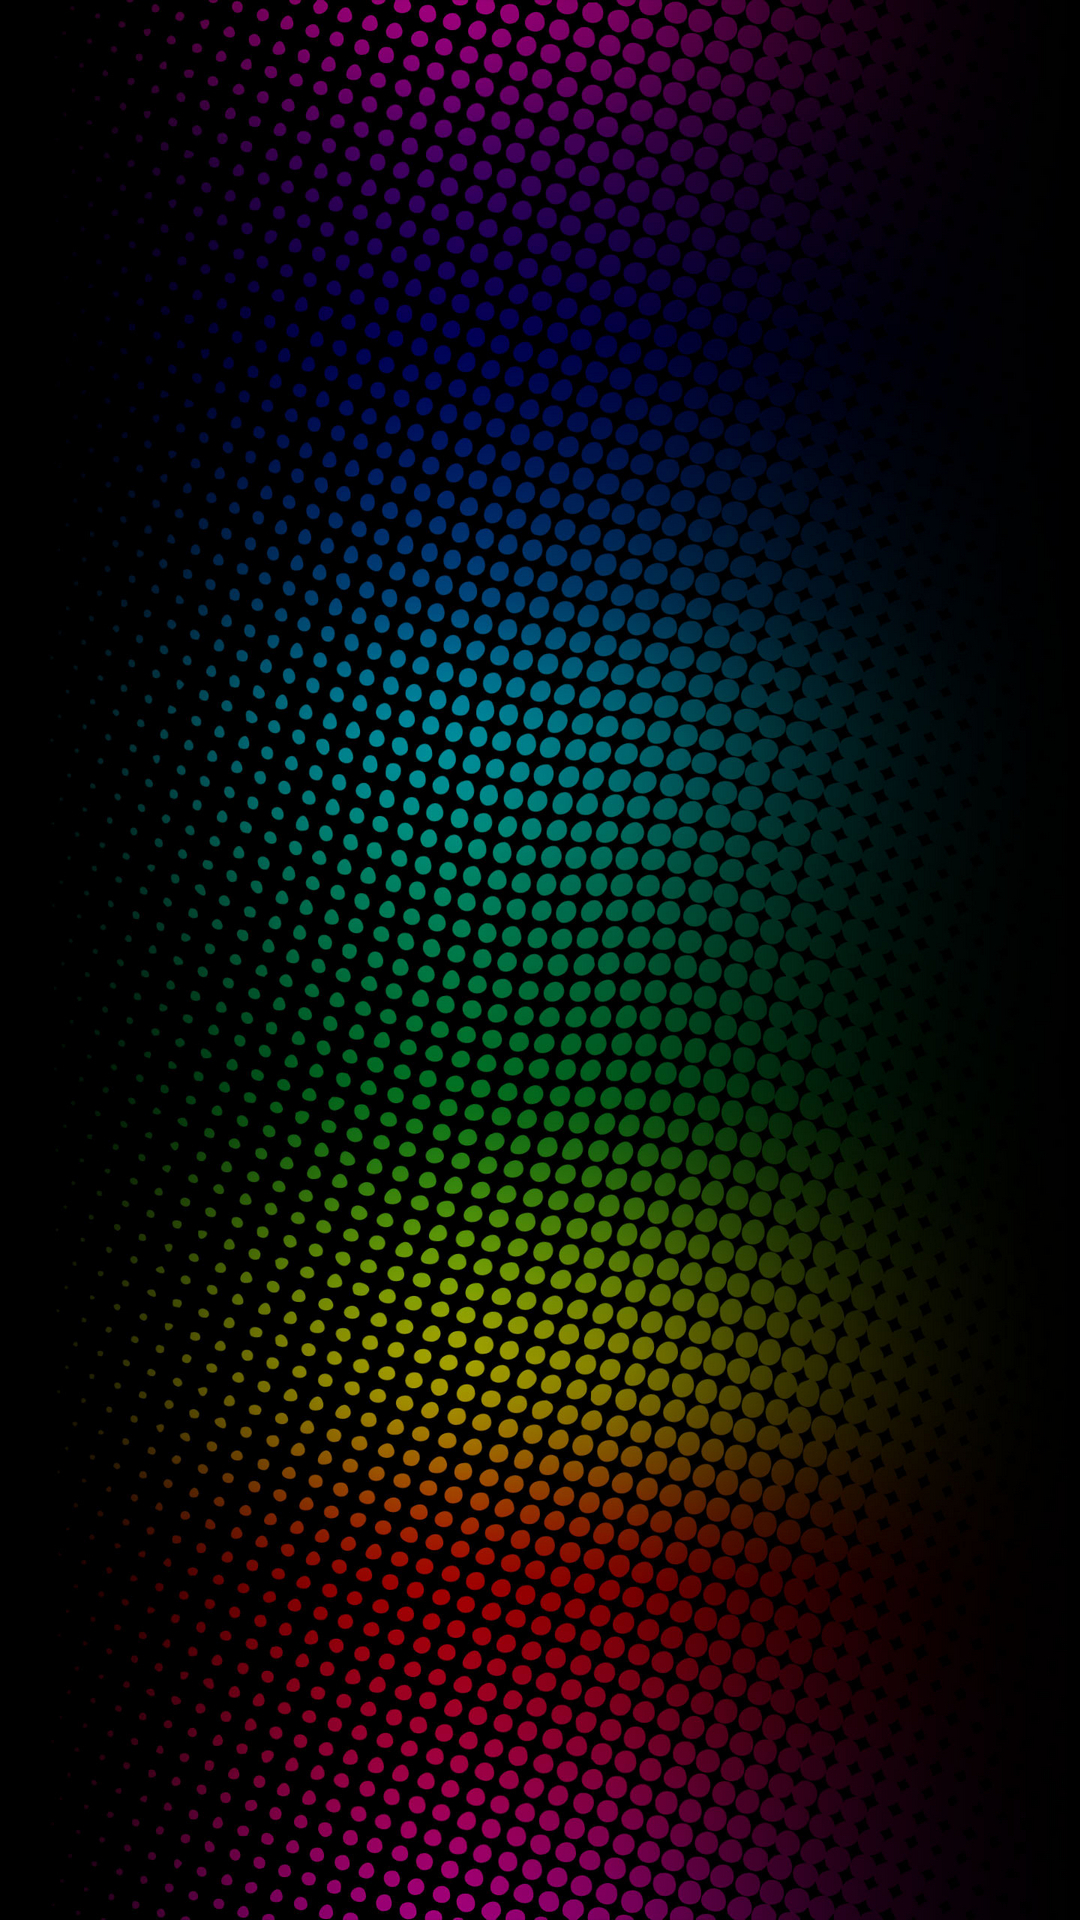 Wallpapers for Samsung Galaxy S4 - Thousands of HD